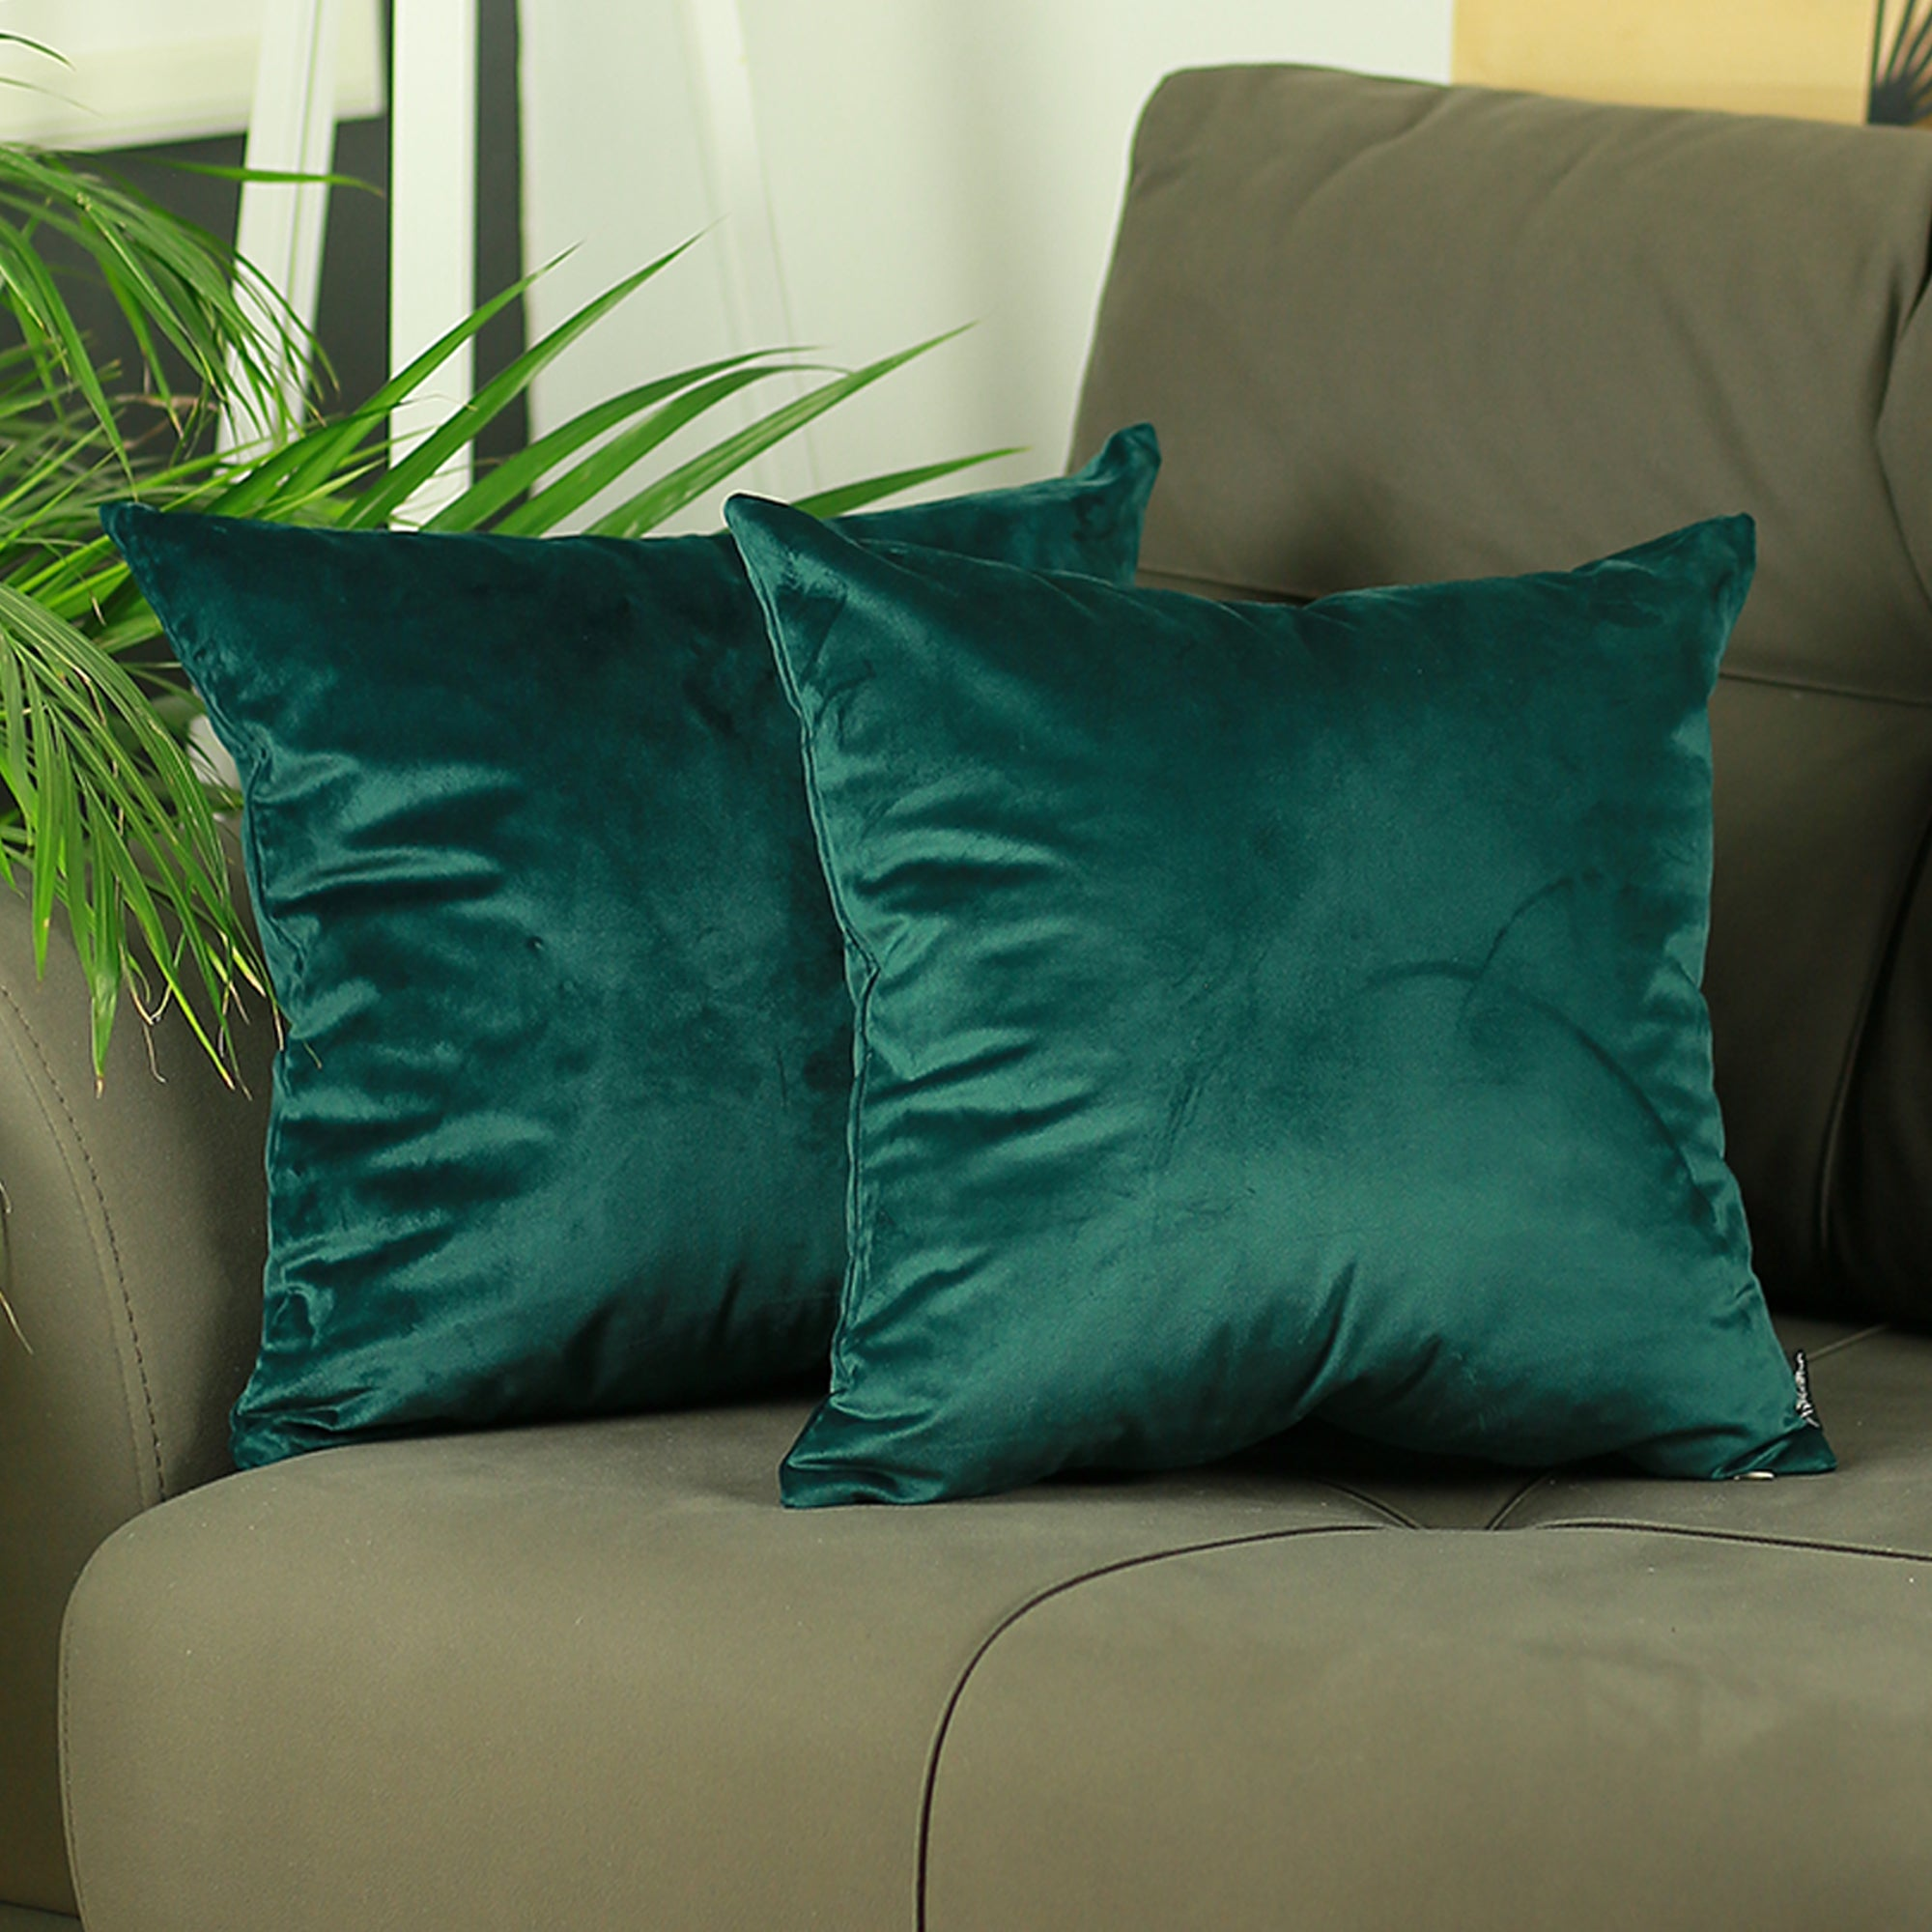 Velvet Dark Emerald Green Decorative Throw Pillow Cover 2 Pcs In Set